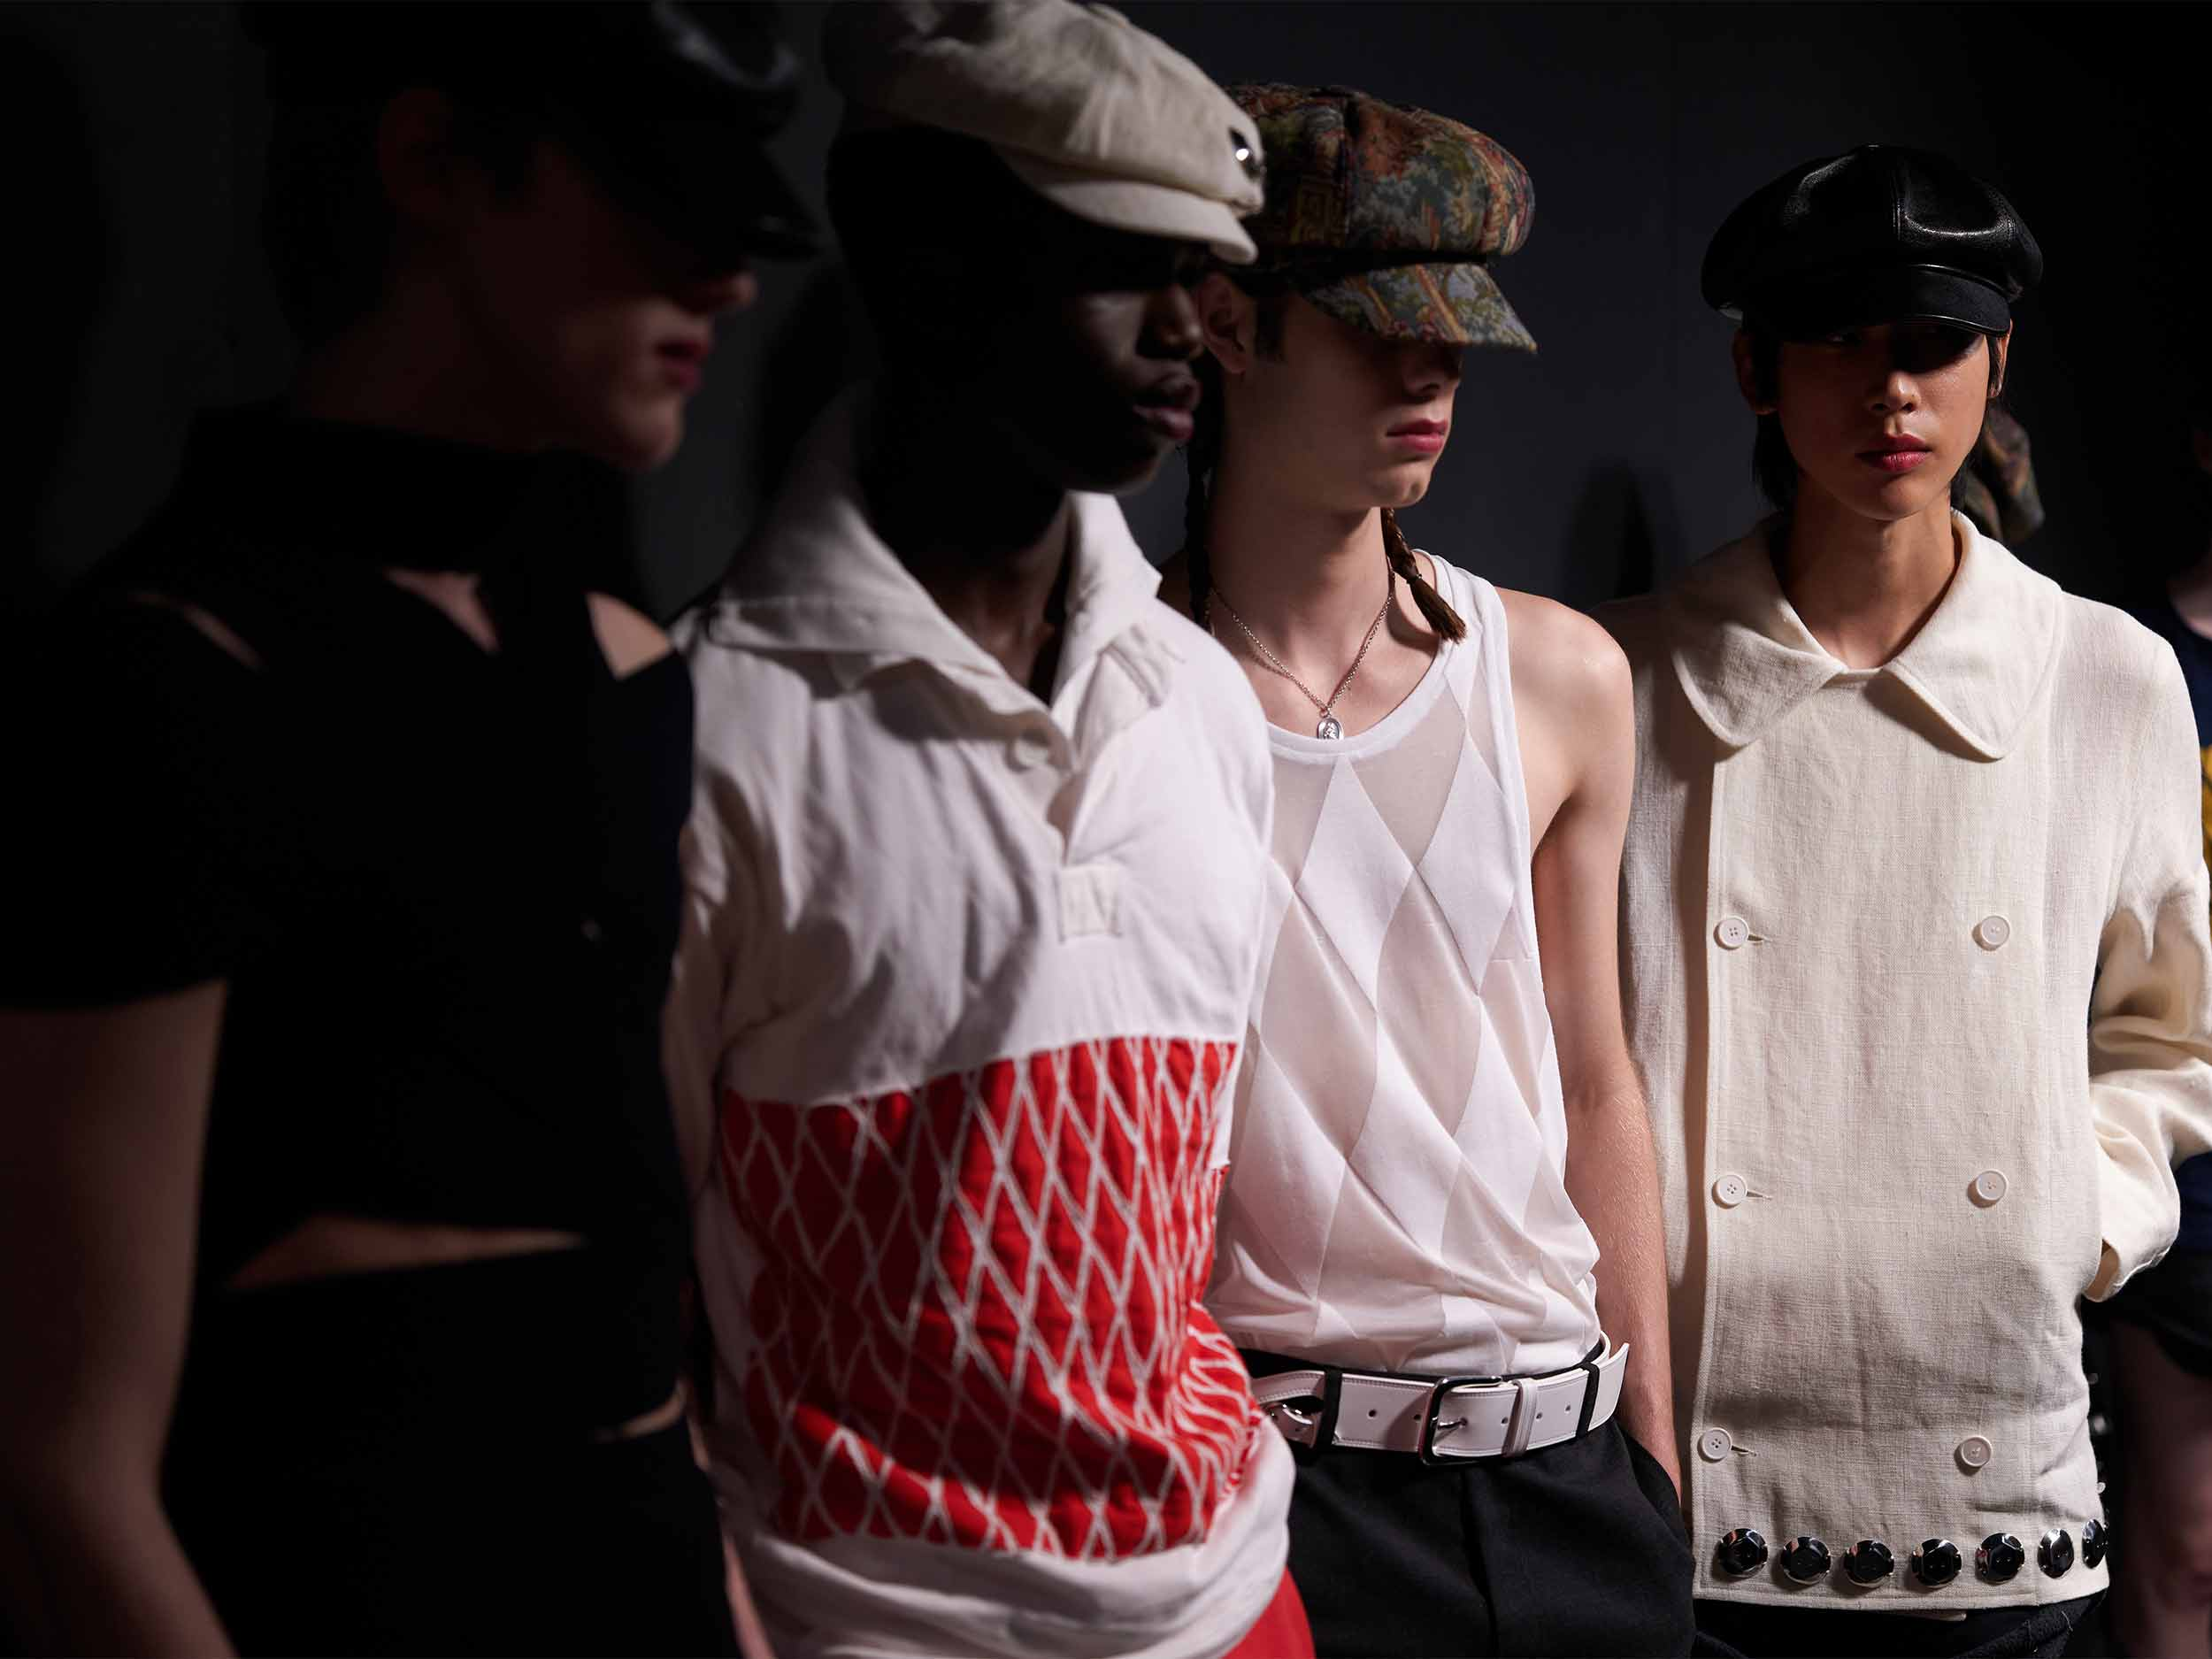 From punk to preppy, London Fashion Week through the lens of Peter Lowe